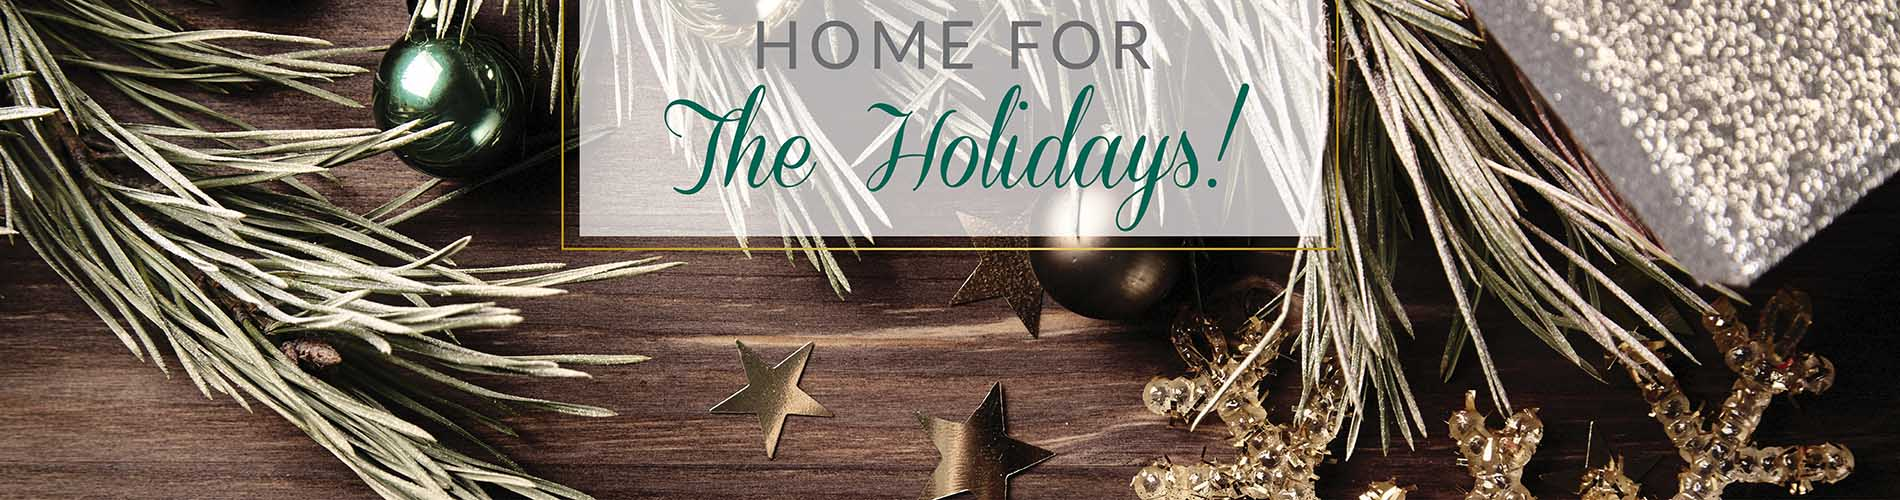 Home for the Holidays Flooring Sale at Abbey Carpet & Floor